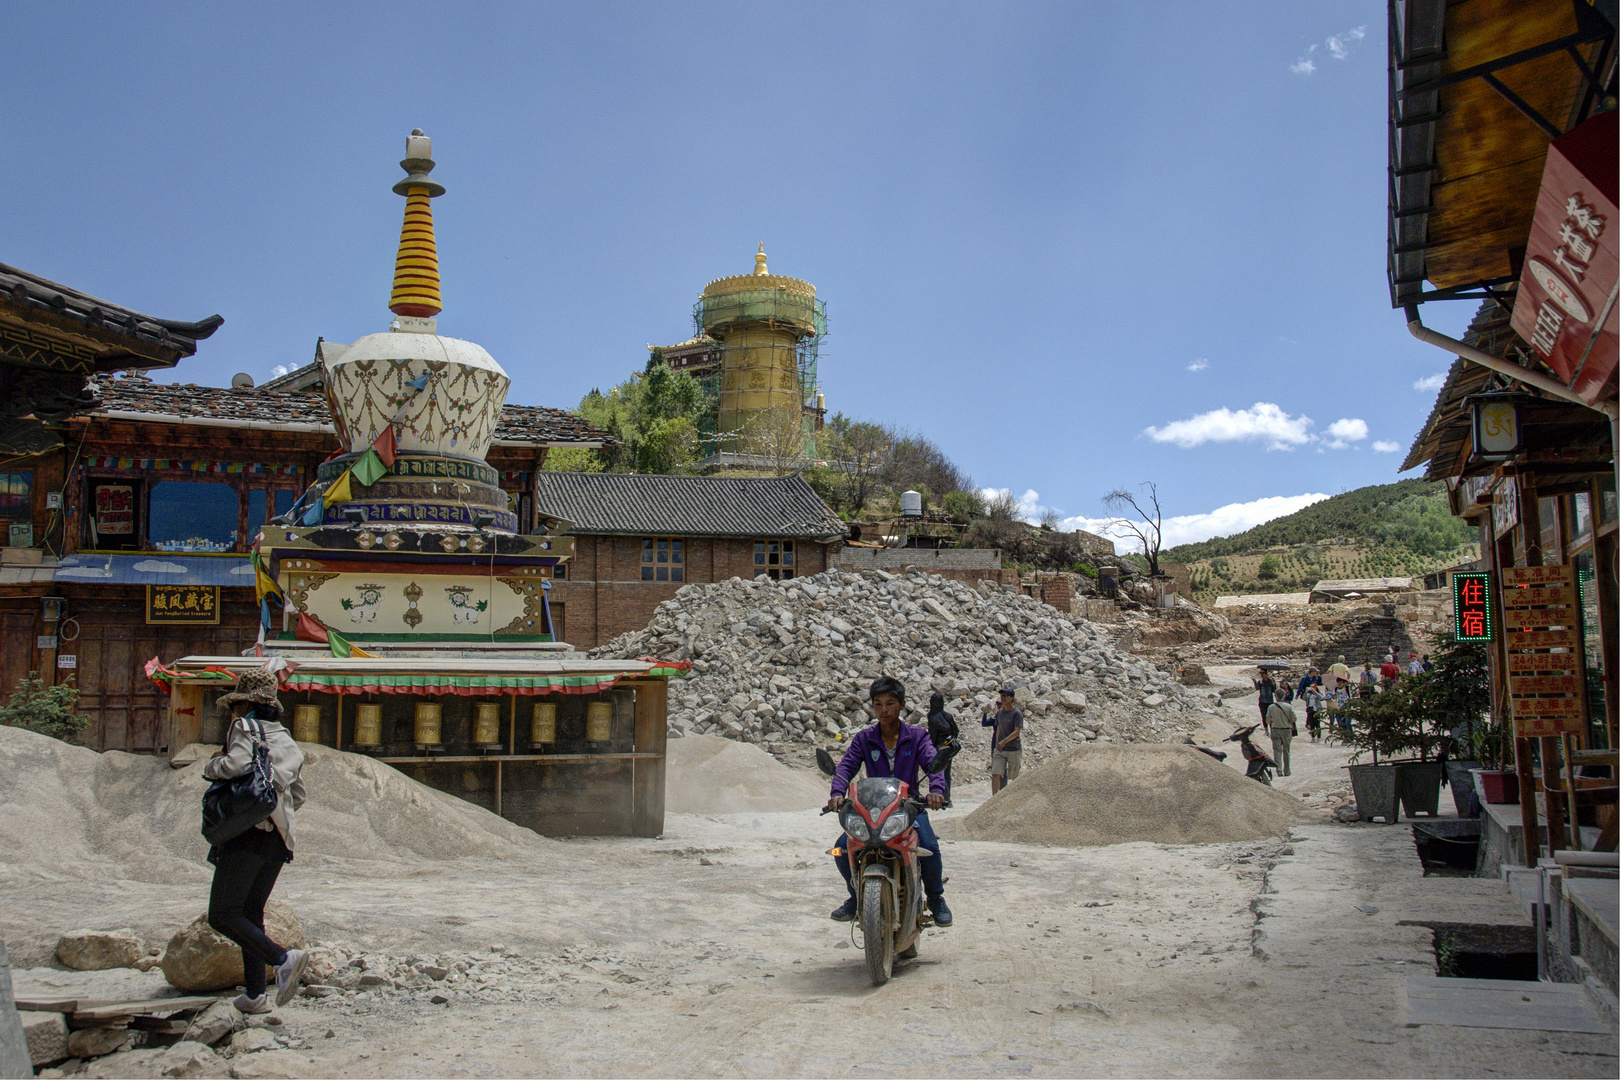 295 - Shangri-La County/Zhongdian - The Old Town (Burned Down After A Fire in January 2014)